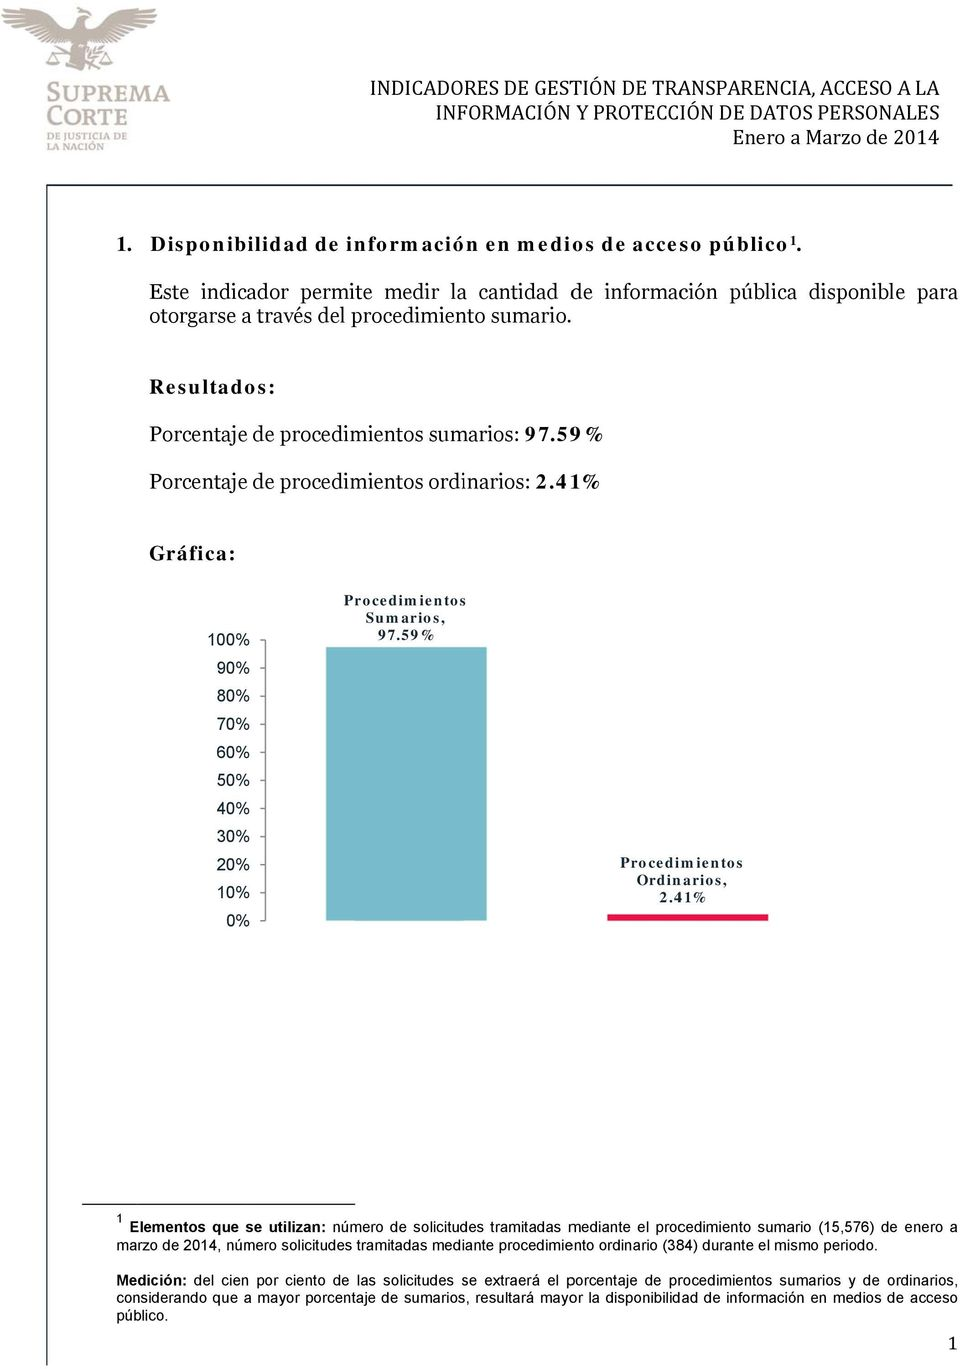 59% Prcedimients Ordinaris, 2.